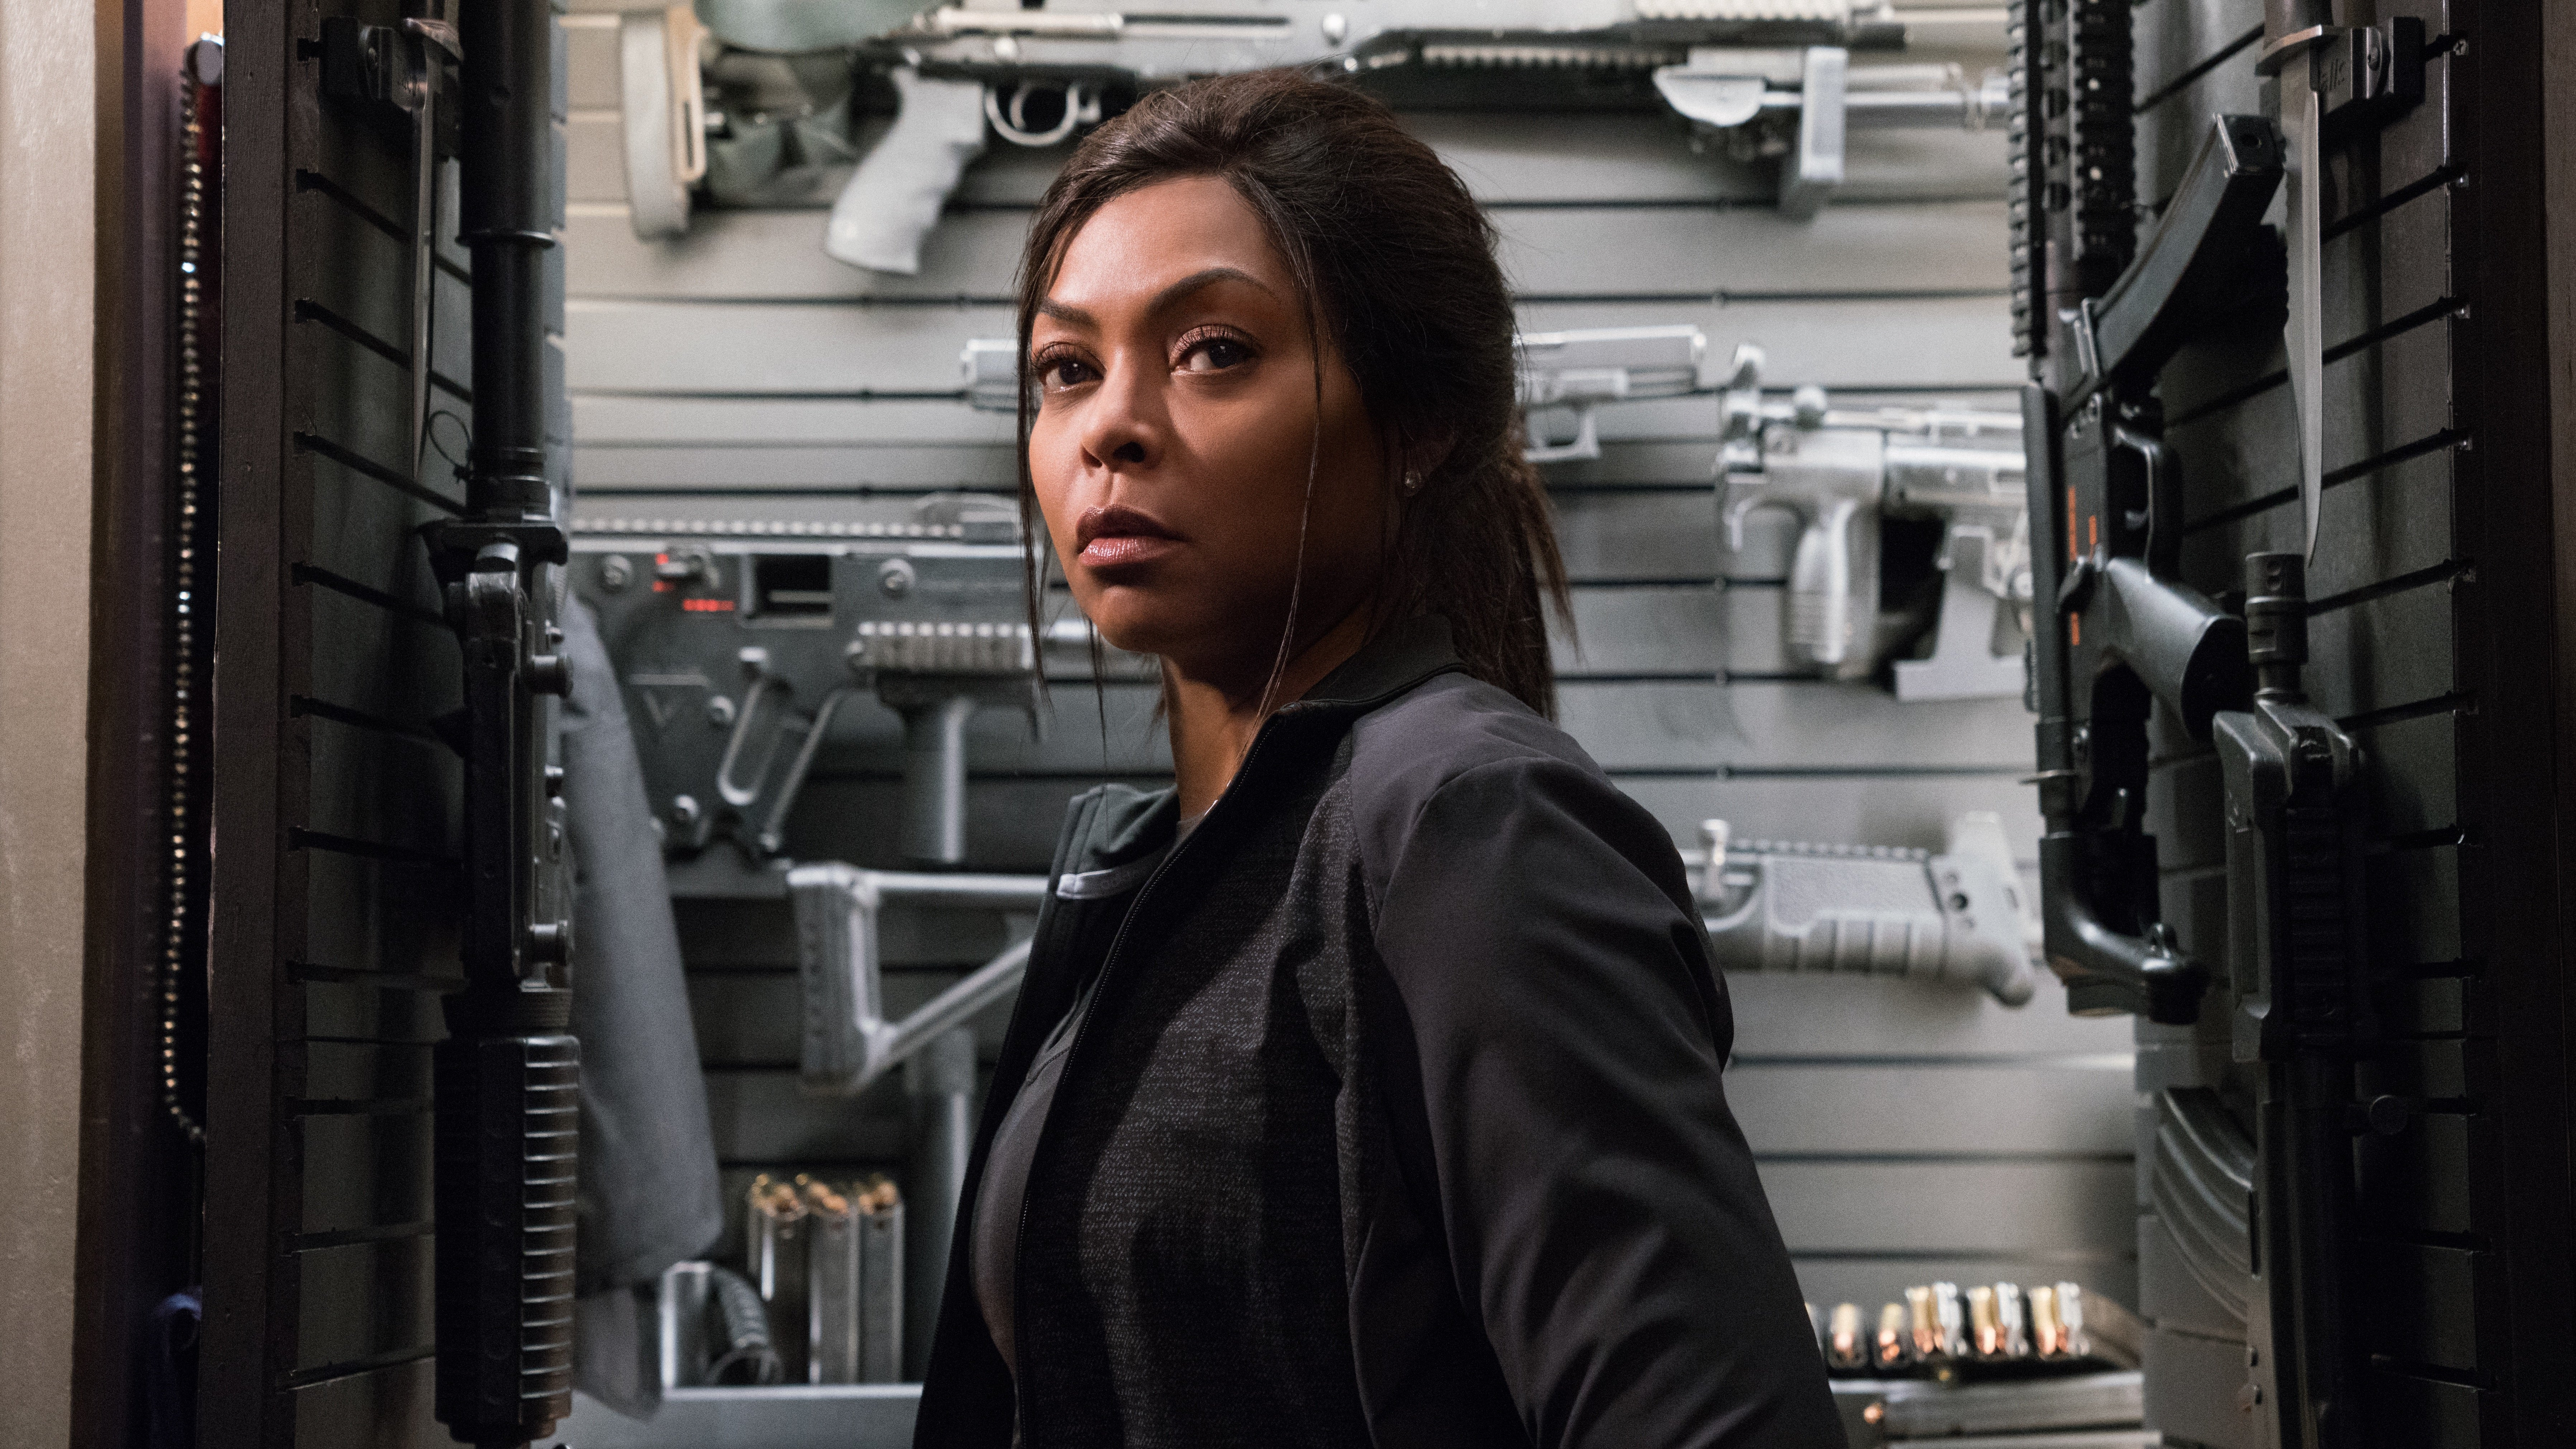 Taraji P Henson On Hollywood's Refusal To Cast Older Women In Action Movies: 'F*#$ That'